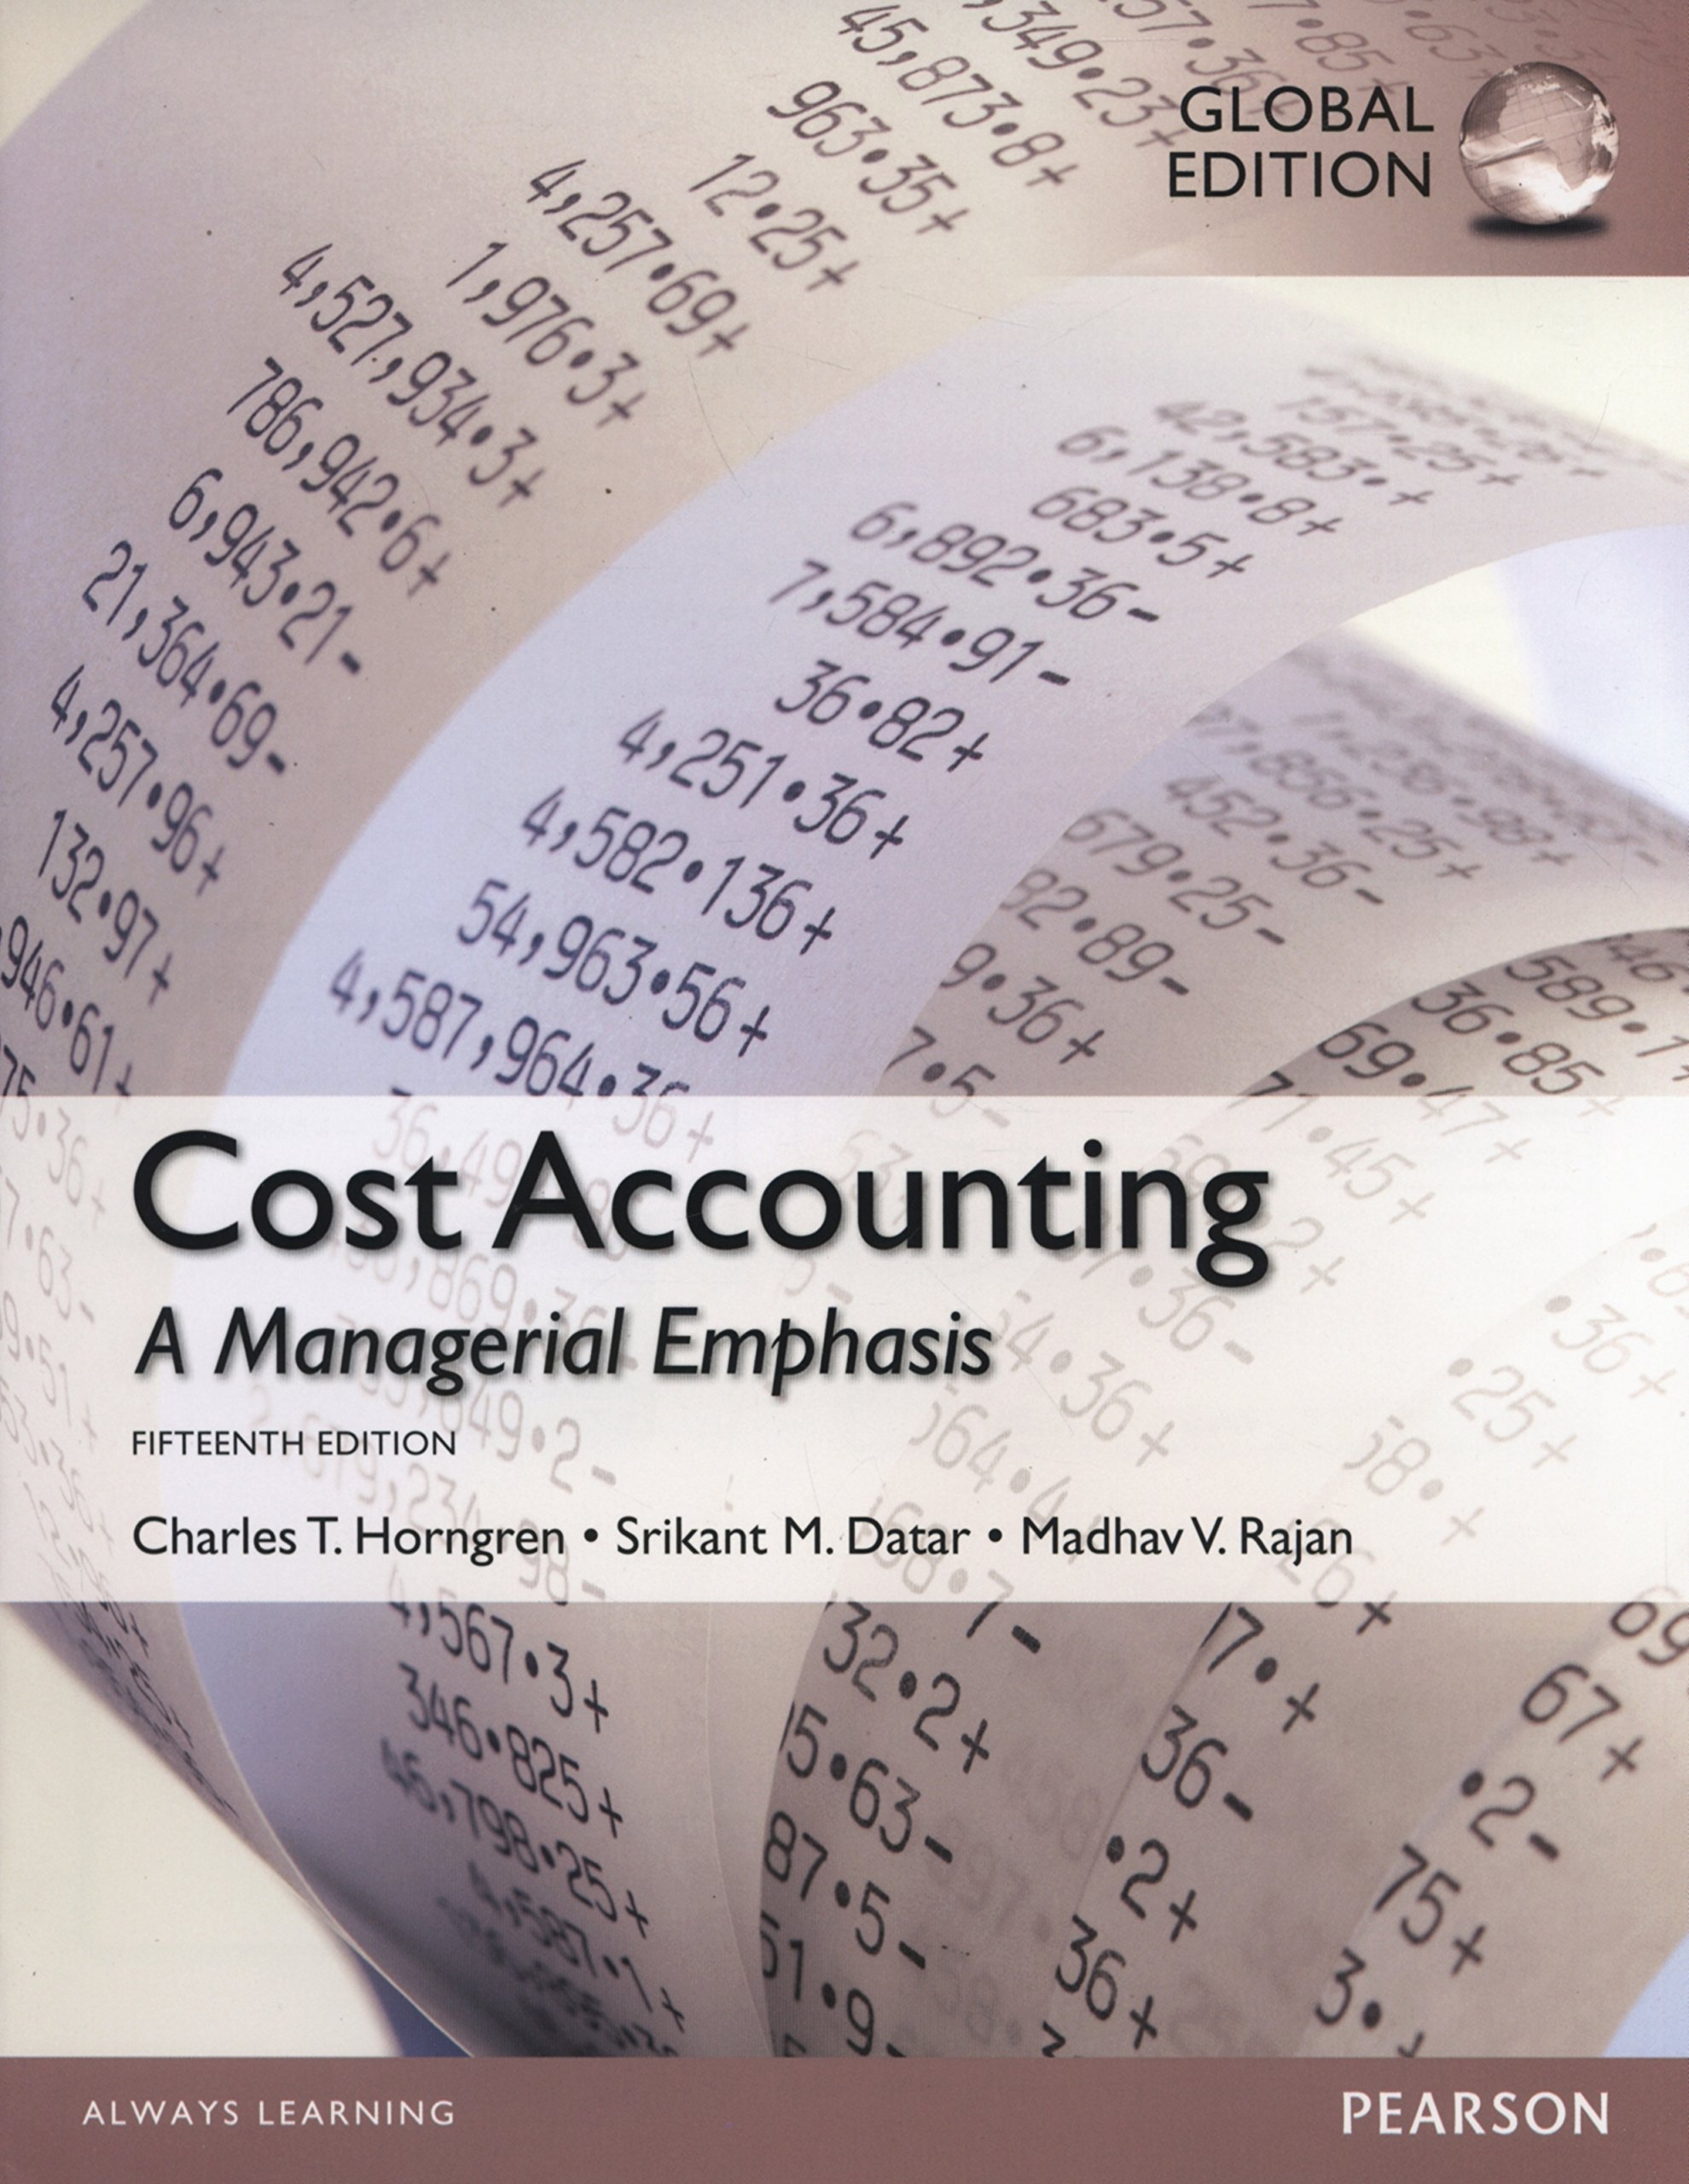 Cost accounting global edition amazon madhav rajan srikant cost accounting global edition amazon madhav rajan srikant m datar charles t horngren 9781292018225 books fandeluxe Images